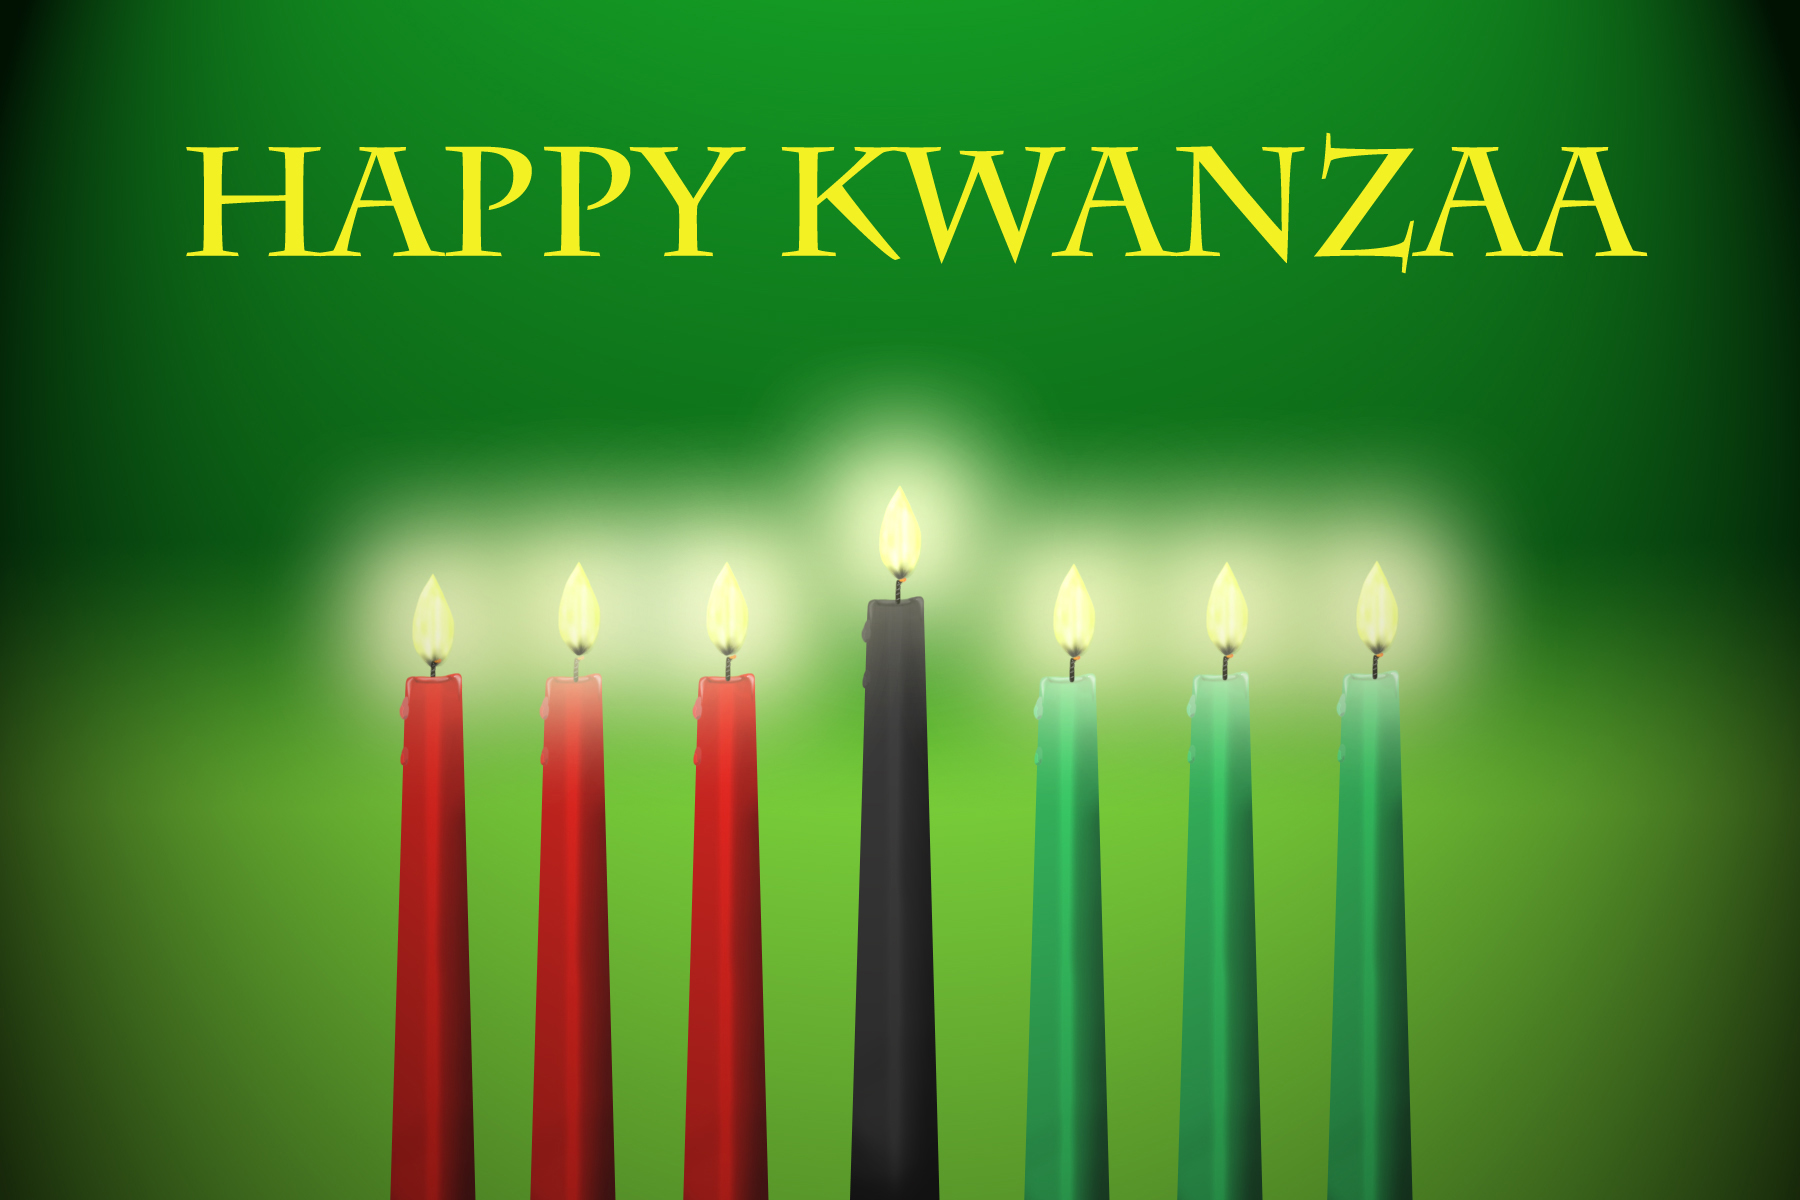 Grissom wishes everyone a happy Kwanzaa Grissom Air Reserve Base 1800x1200